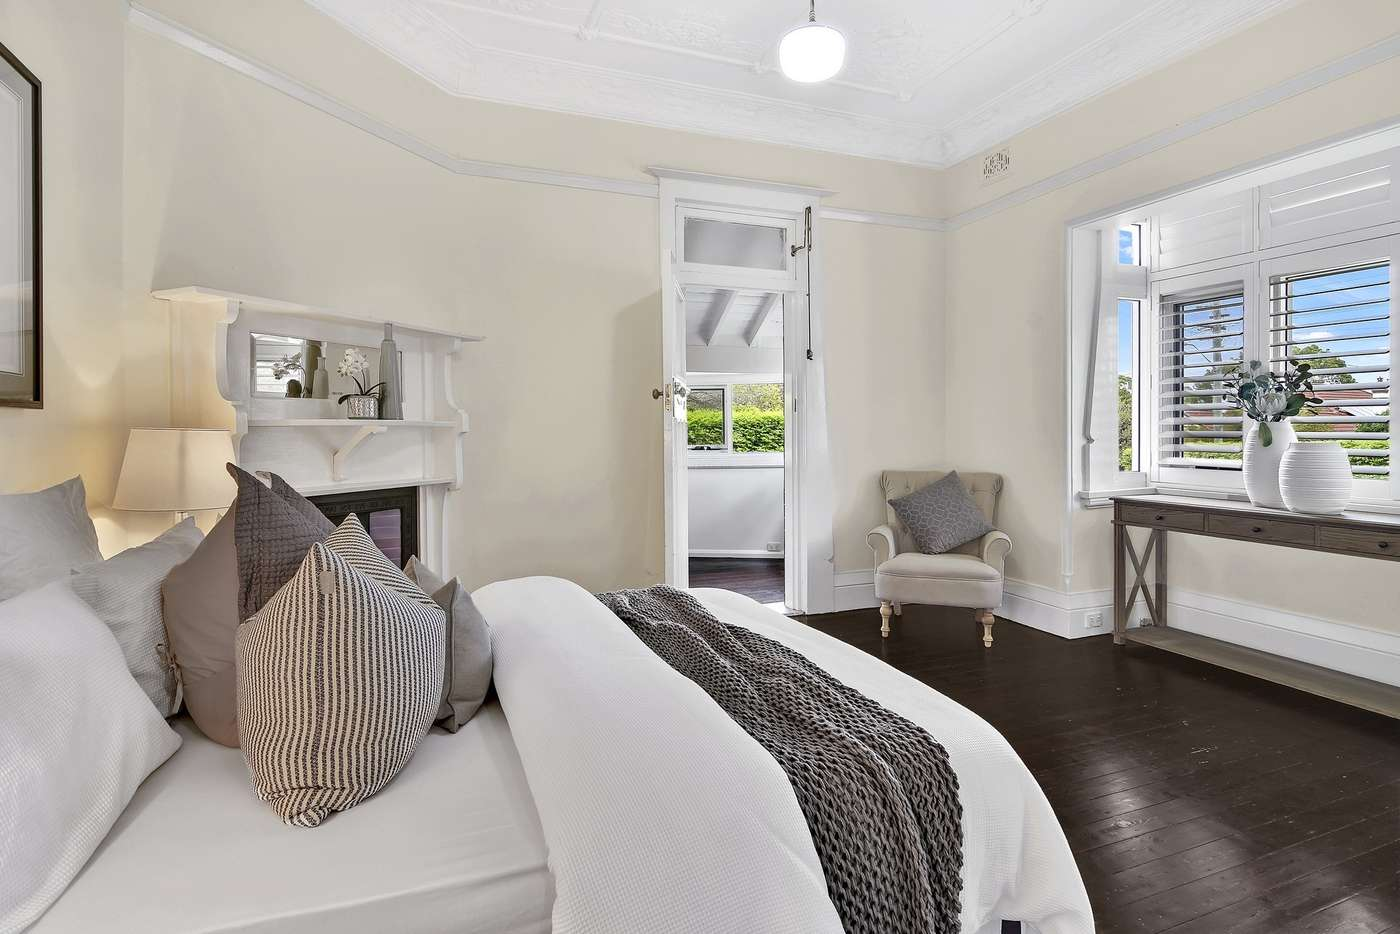 Sixth view of Homely house listing, 235 Mowbrary Road, Chatswood NSW 2067